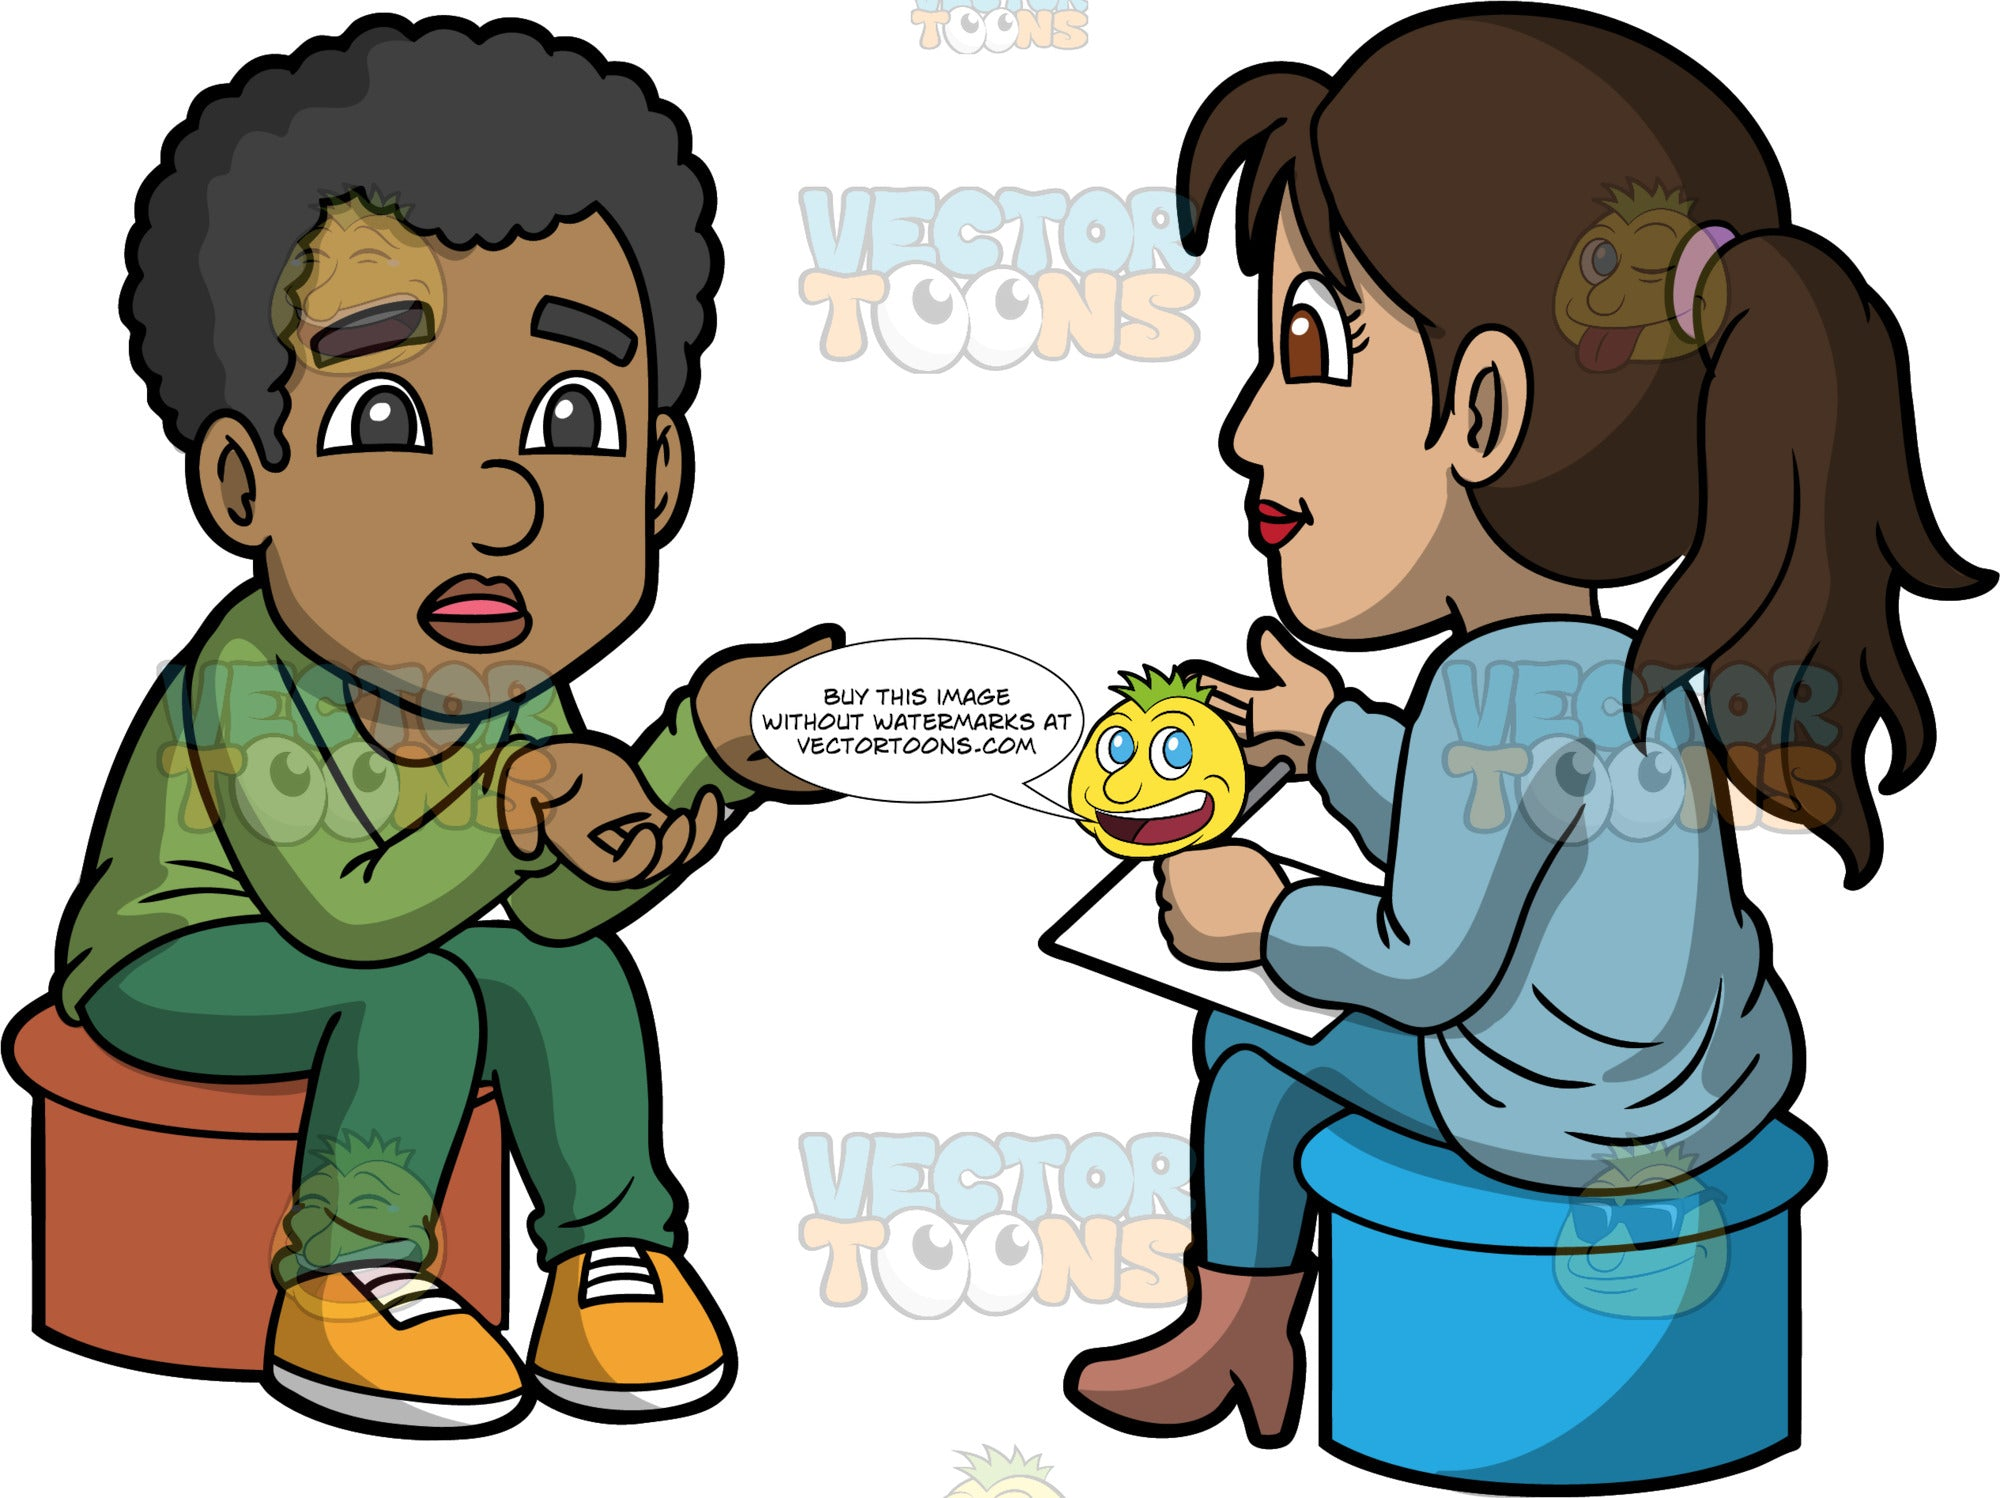 Jimmy Talking To A Counselor. A black man wearing green pants, a green long sleeve top, and yellow shoes sitting on a stool talking to a female therapist wearing blue pants, a light blue sweater and brown boots